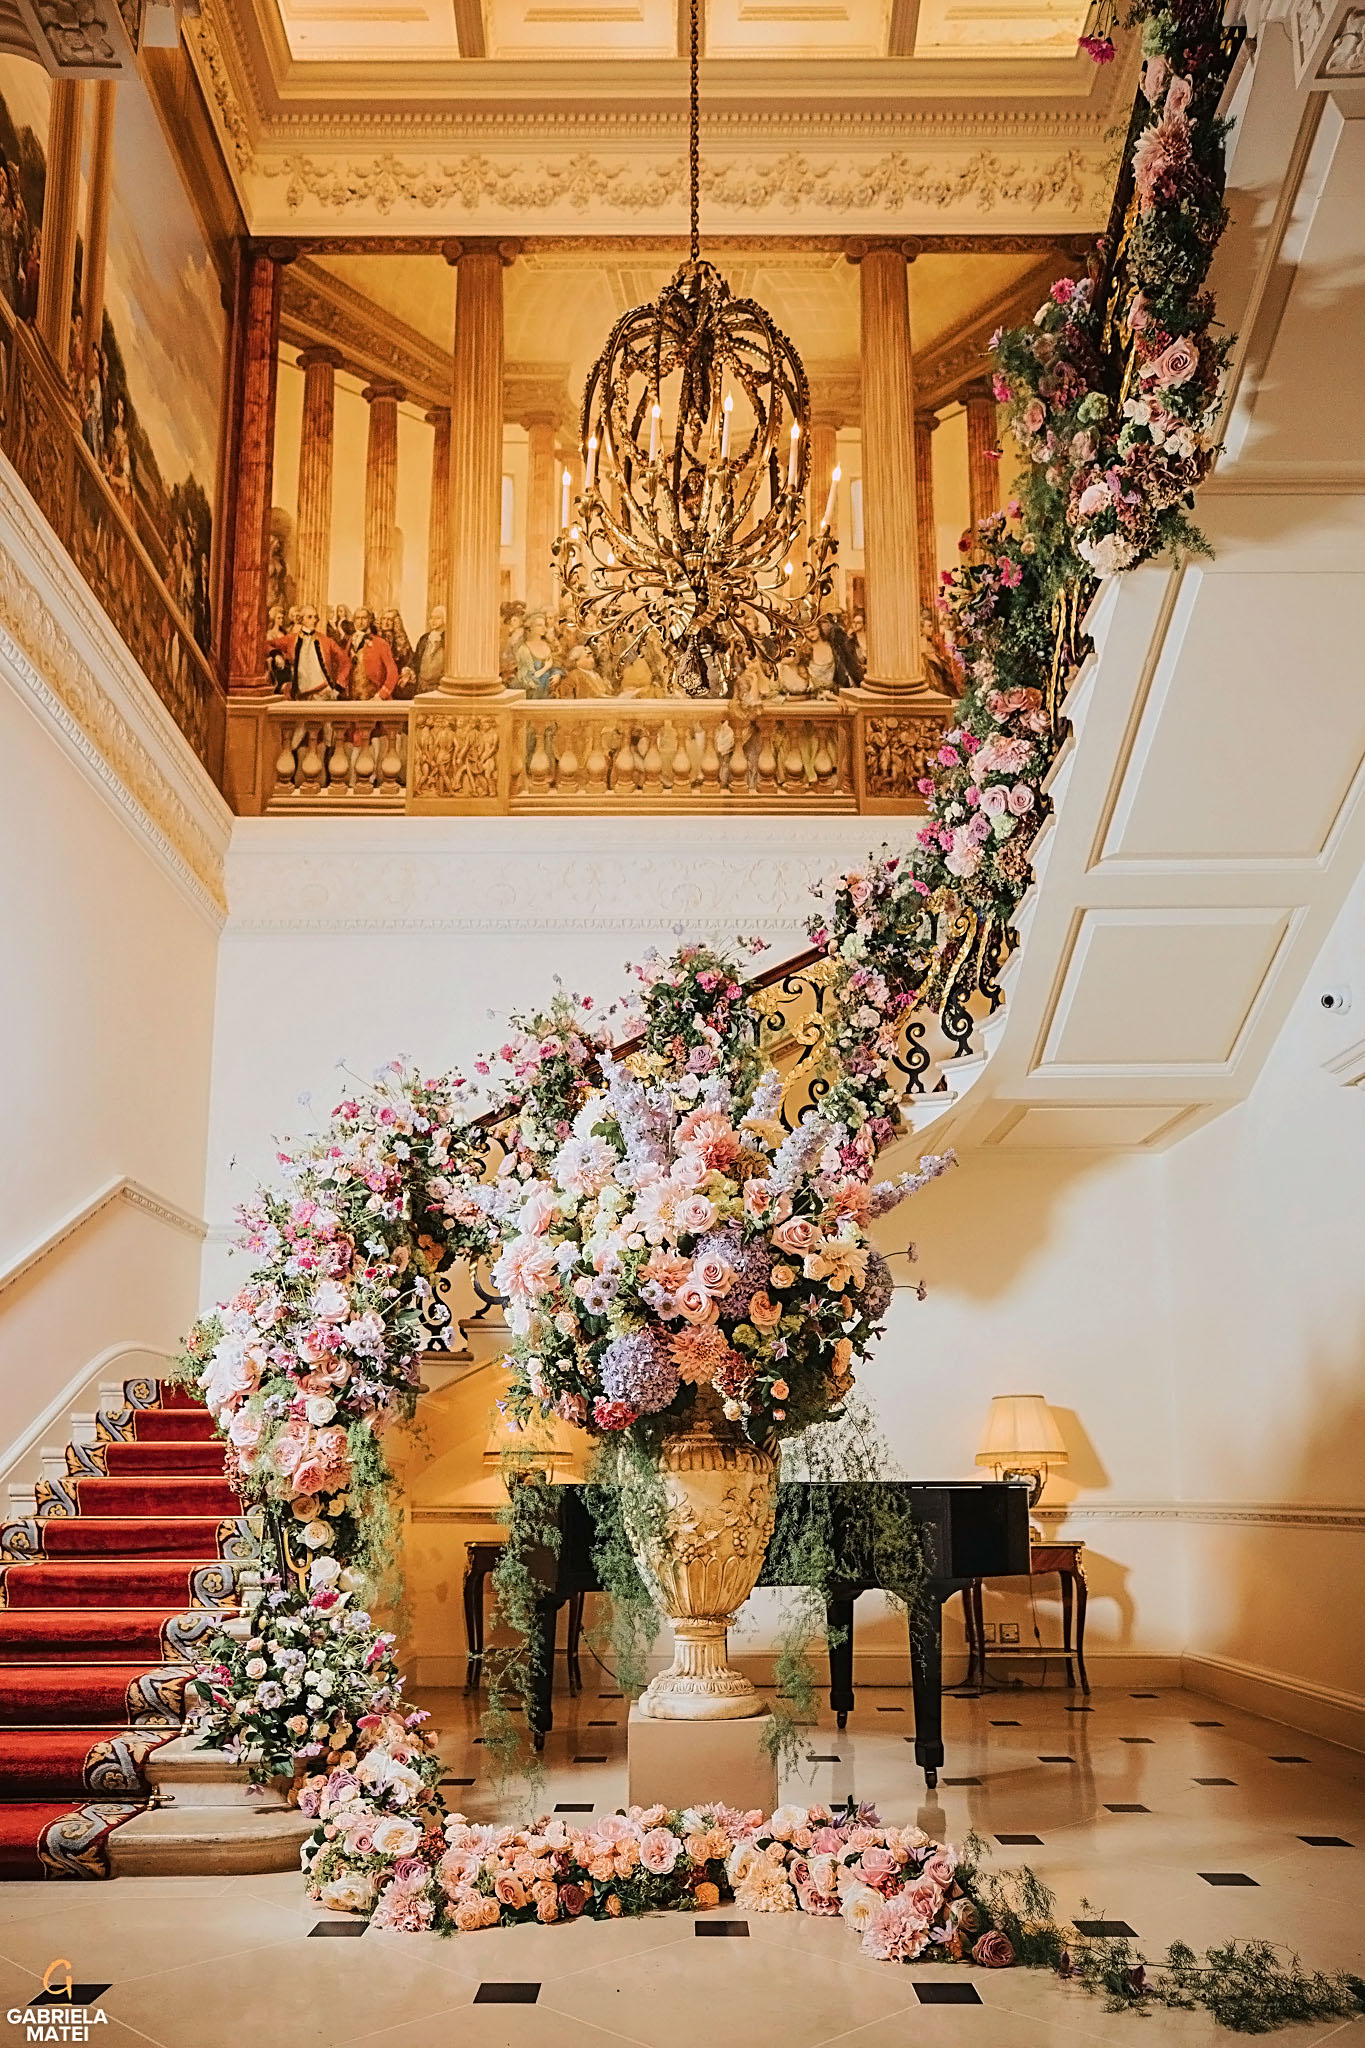 Elegant Wedding Floral Design for stairs by Paul Thomas at The Ritz hotel in London